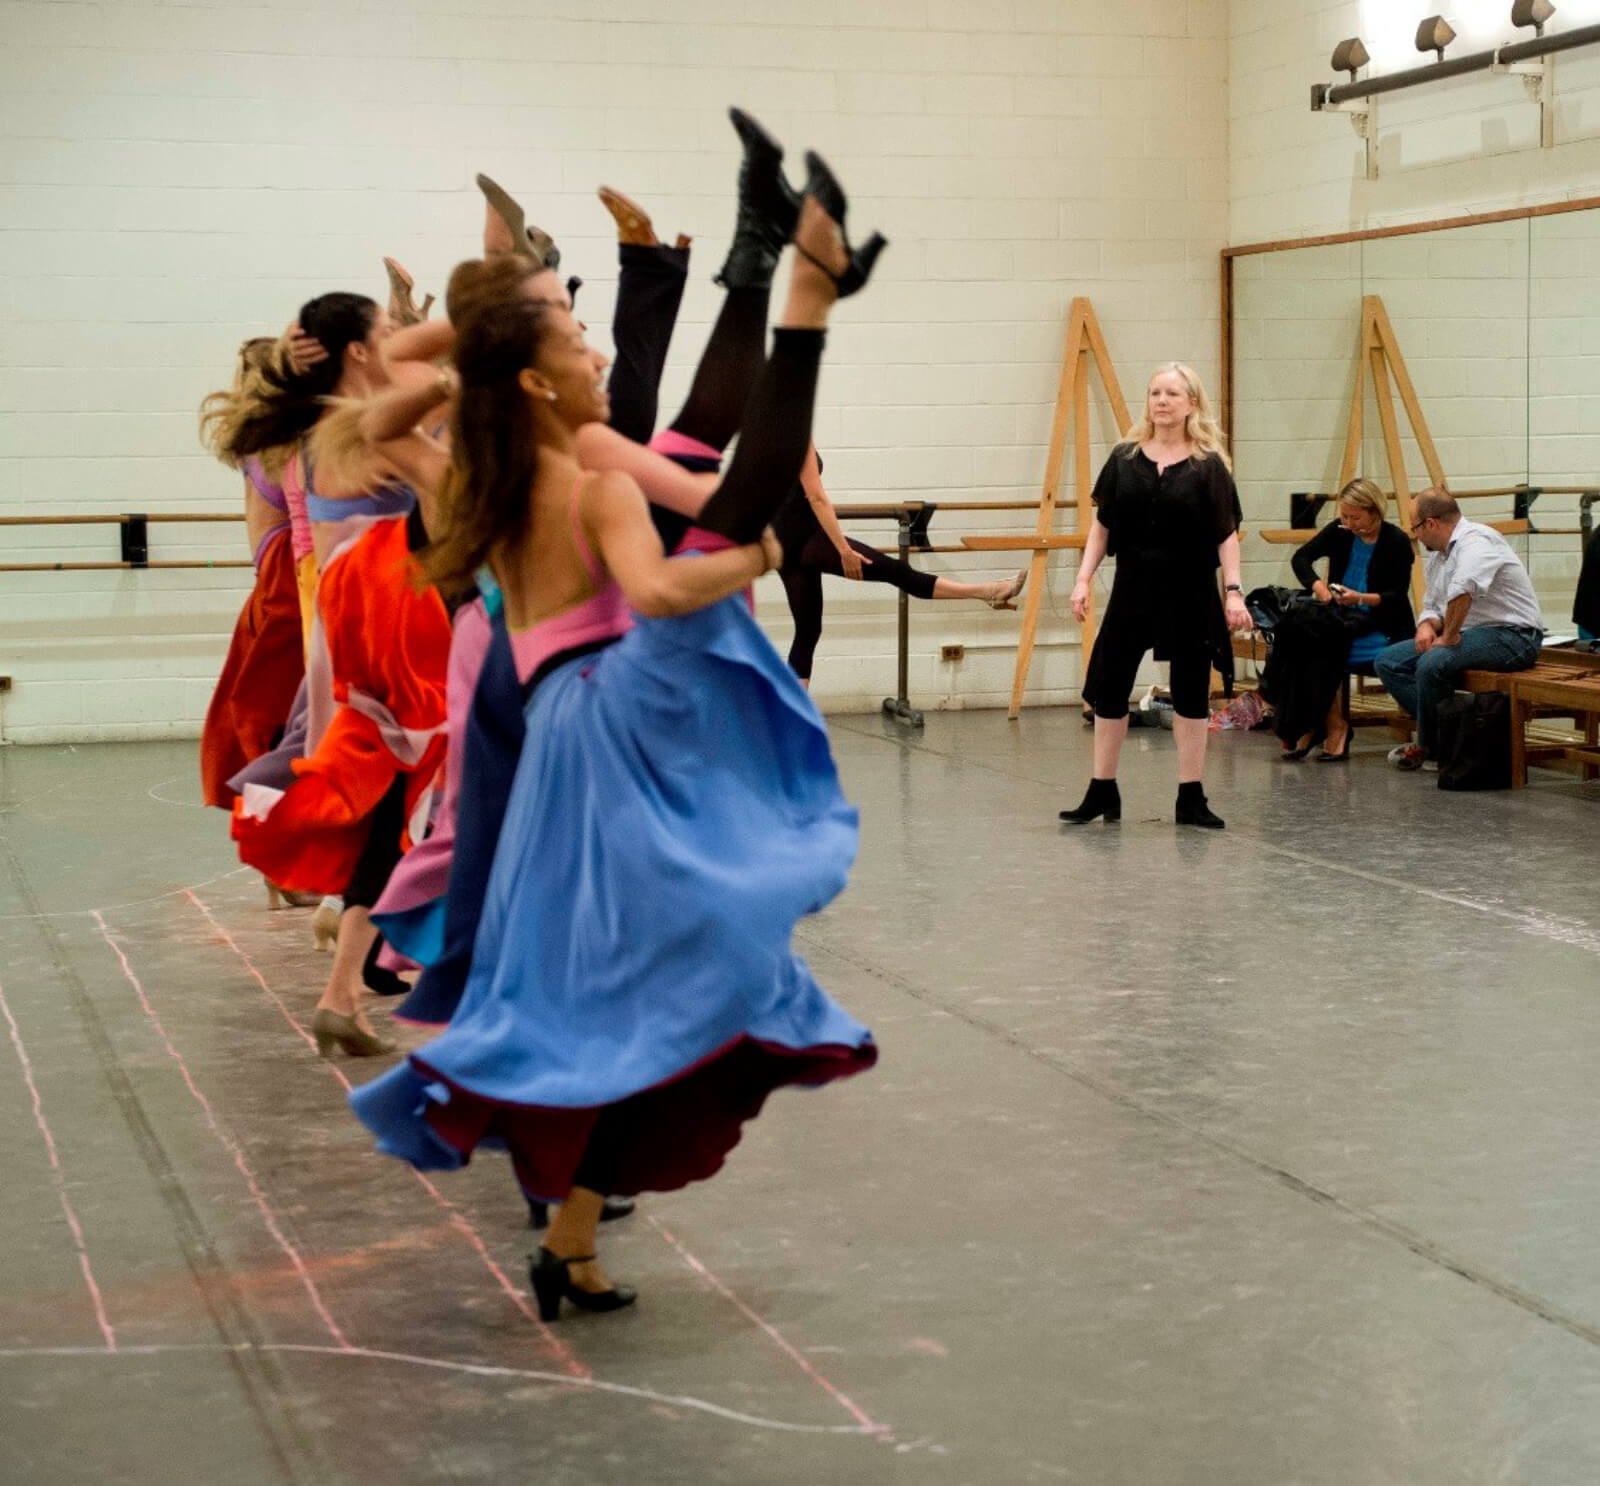 """Susan Stroman with the Female dancers rehearsing the """"Can Can"""". The ladies stand in a line kicking with one leg high in the air."""